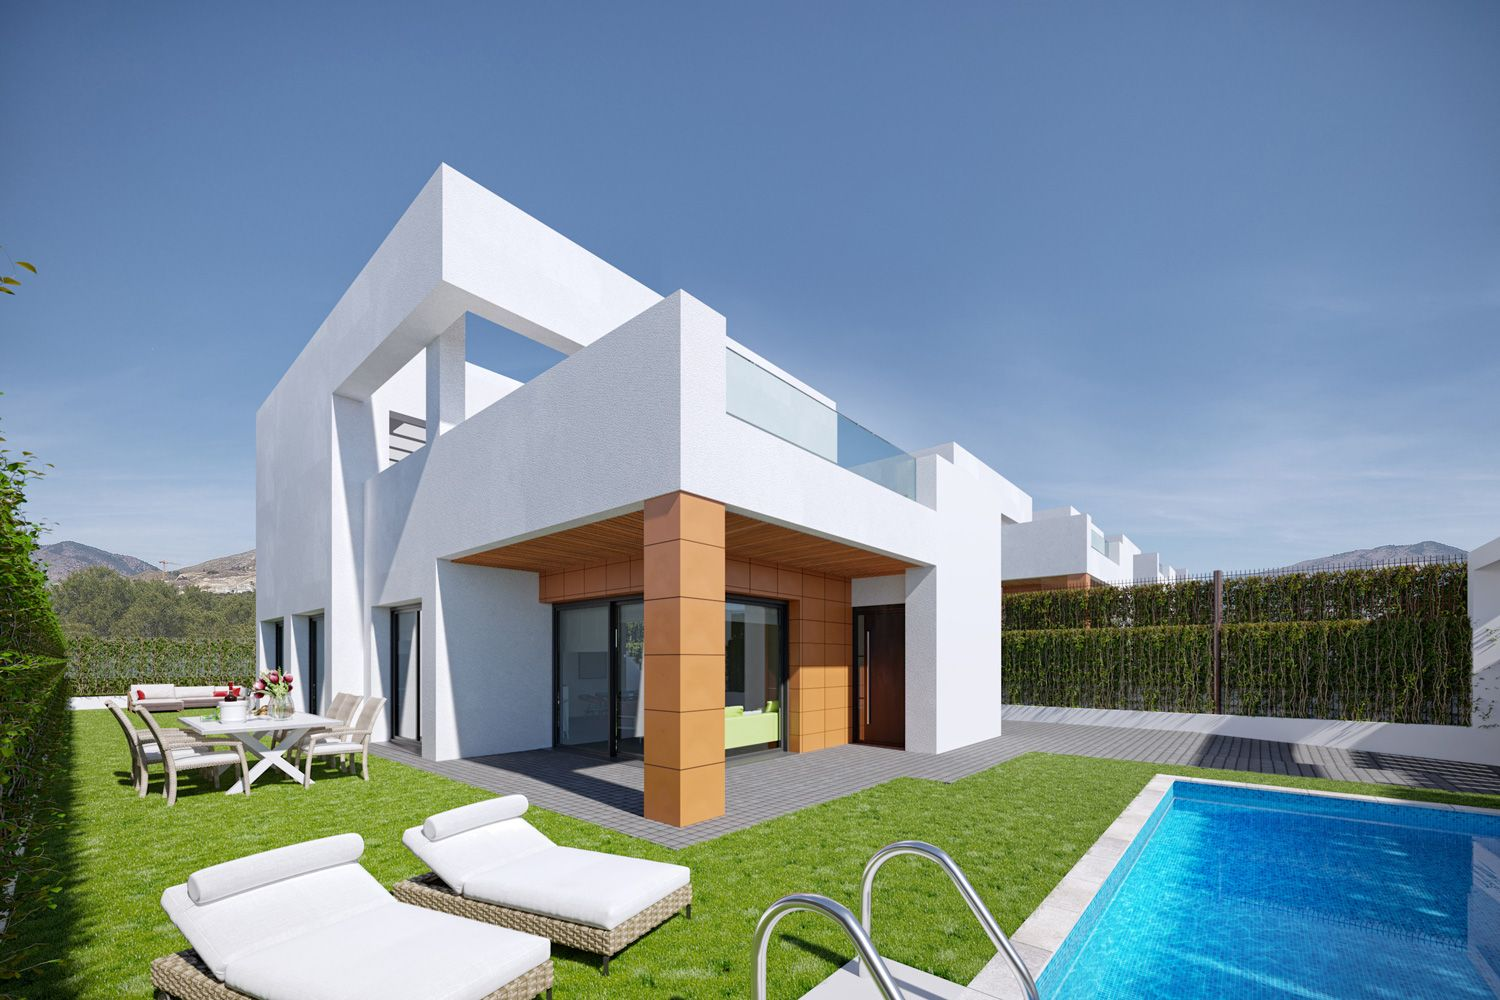 Villas unifamiliares en Finestrat 9